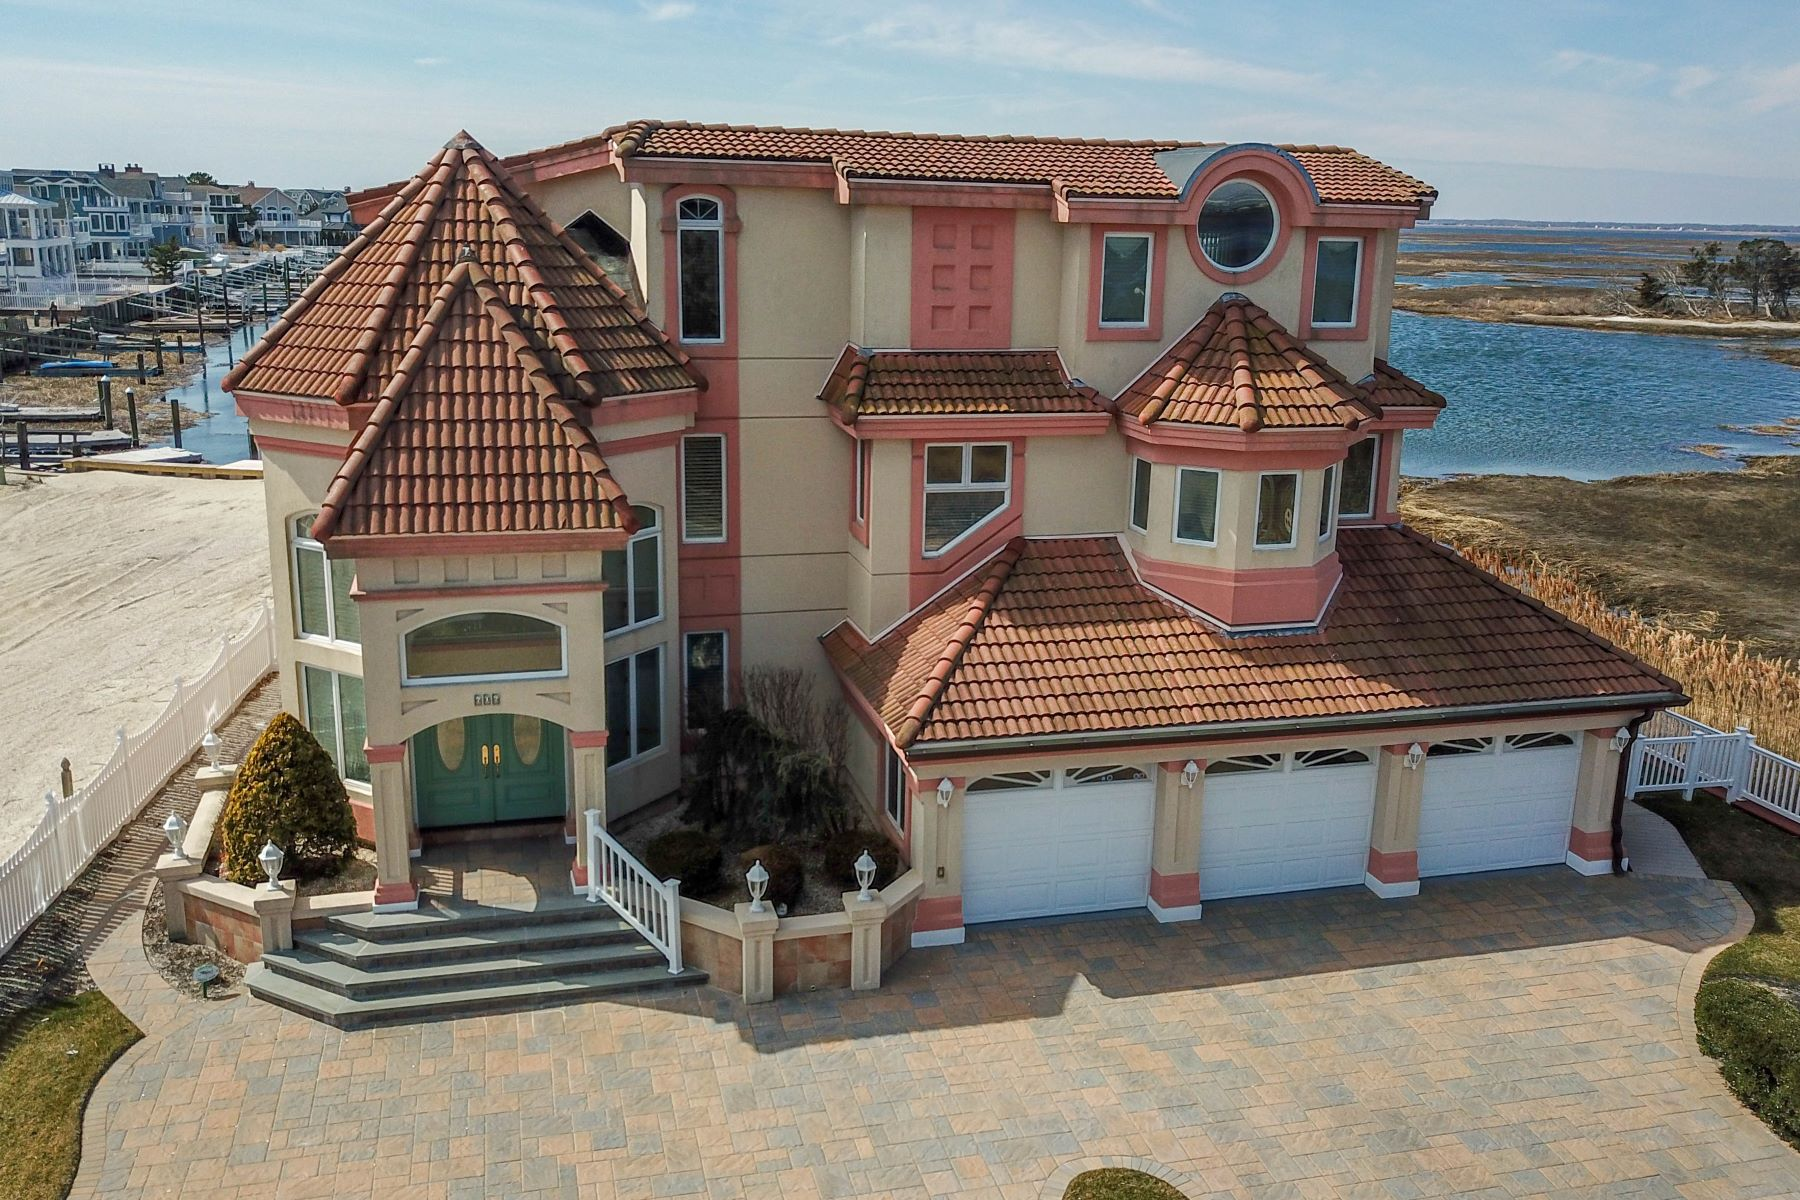 Single Family Home for Sale at Premier Bayfront Masterpiece 606 42nd Street, Avalon, New Jersey 08202 United States